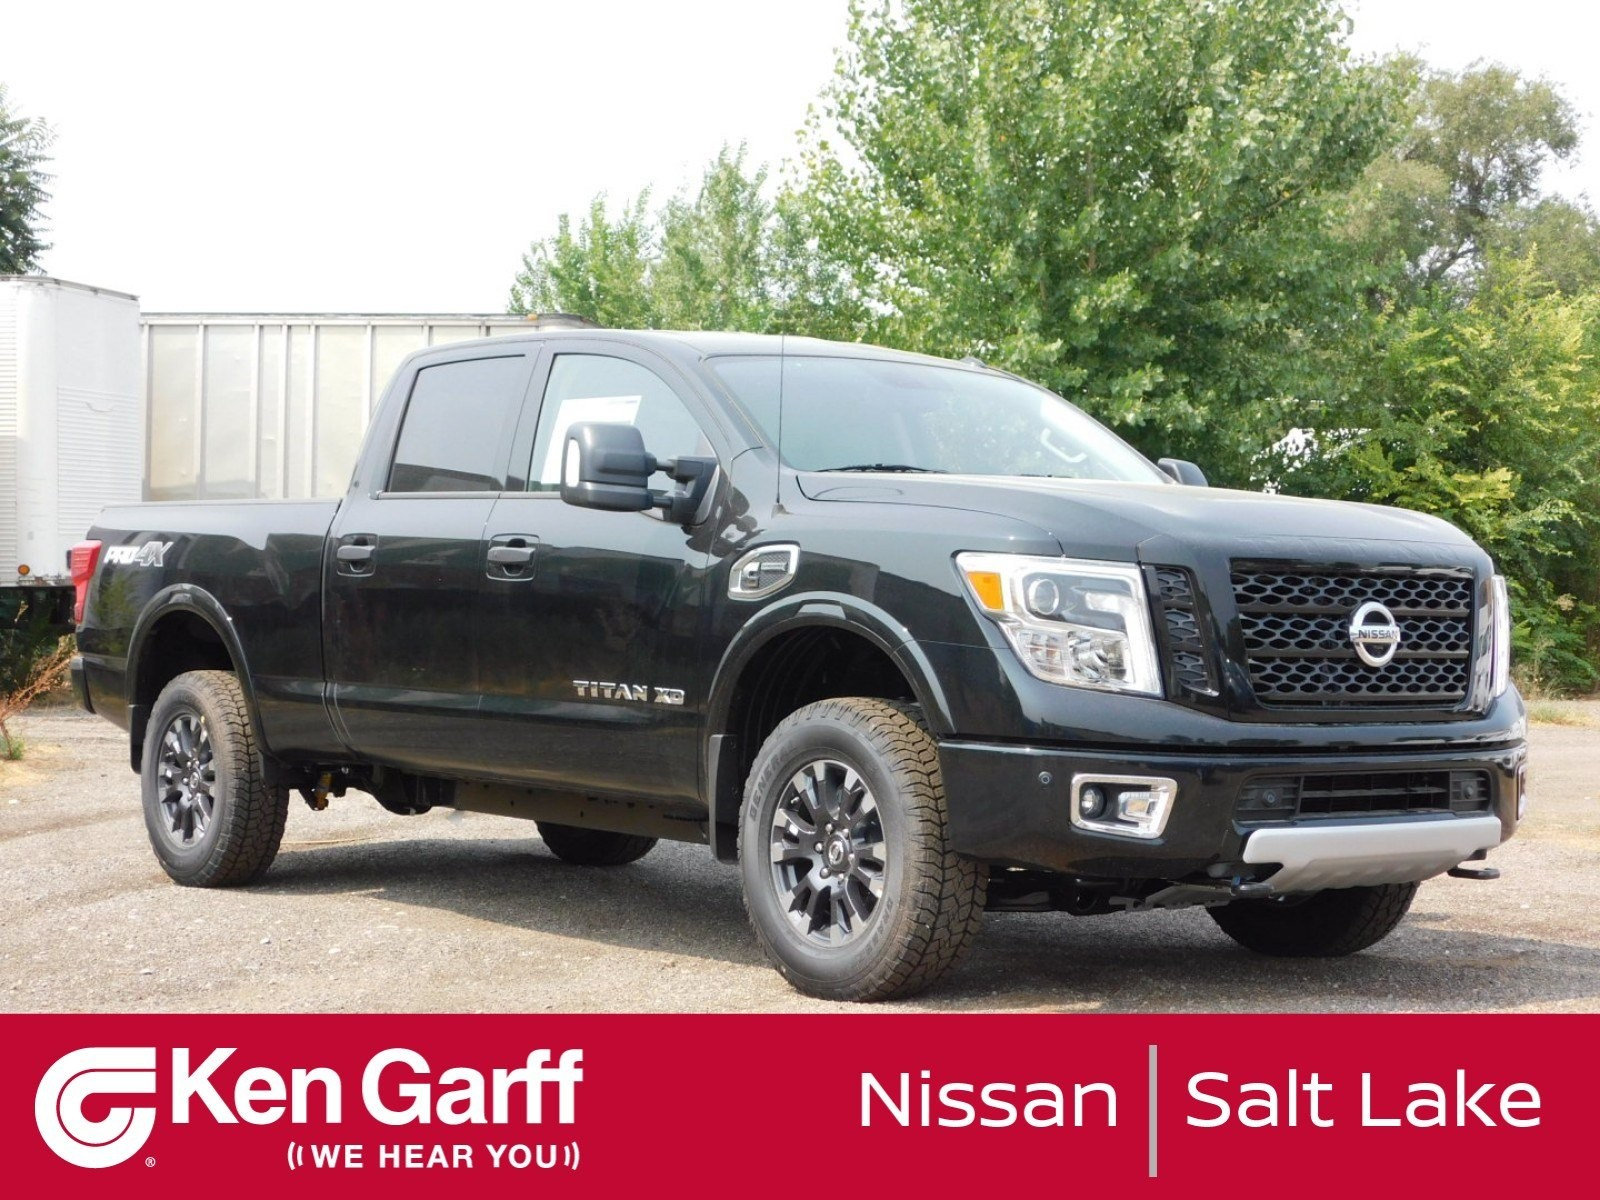 2006 Nissan Titan Parts Diagram New 2018 Nissan Titan Xd Pro 4x Crew Cab Pickup In Salt Lake City Of 2006 Nissan Titan Parts Diagram New 2018 Nissan Titan Pro 4x Crew Cab Pickup In Salt Lake City